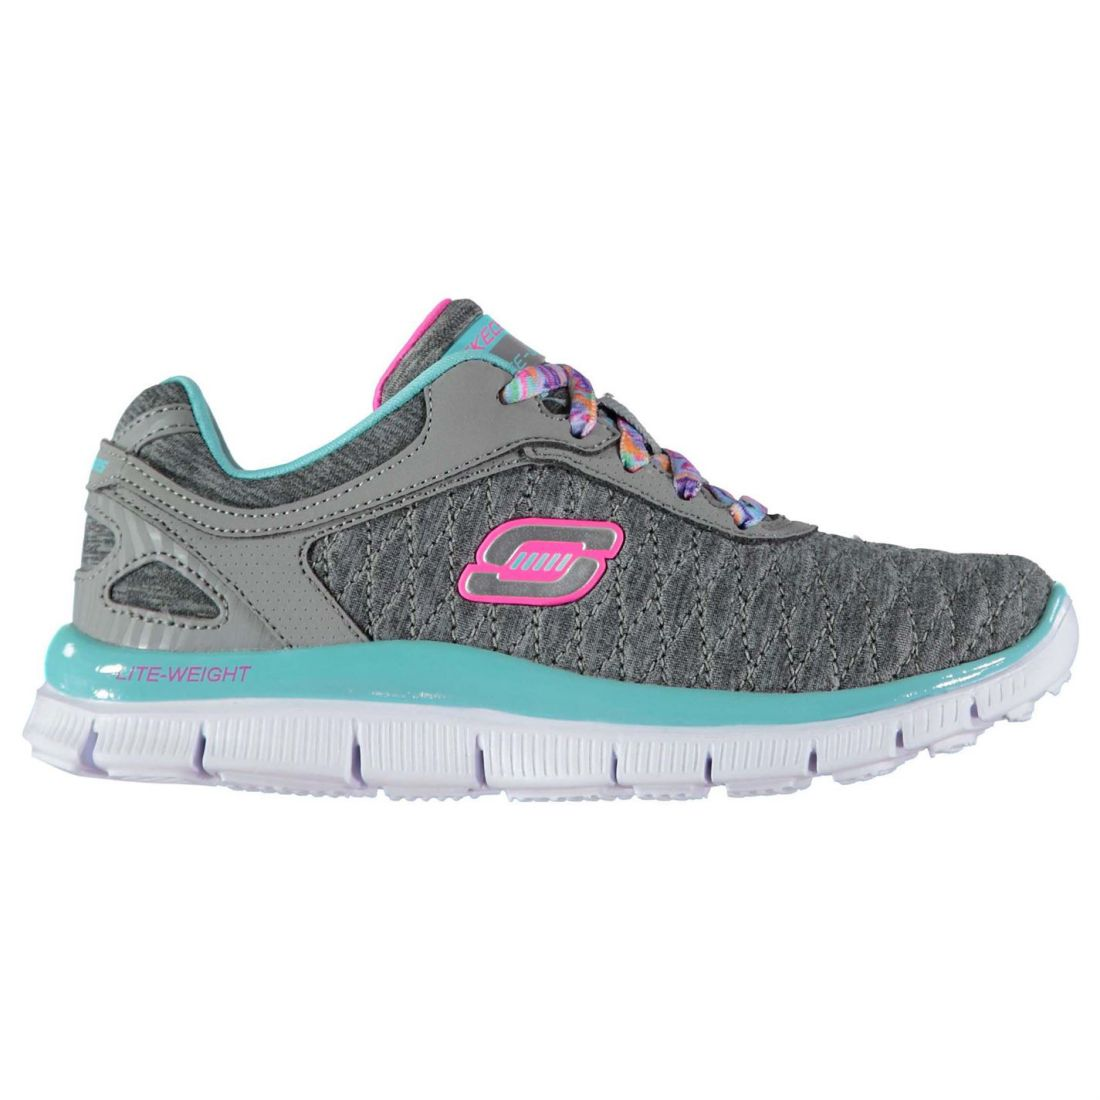 016be7ca937b Details about Skechers Kids Appeal Girls Trainers Shoes Lace Up Textile  Memory Foam Casual